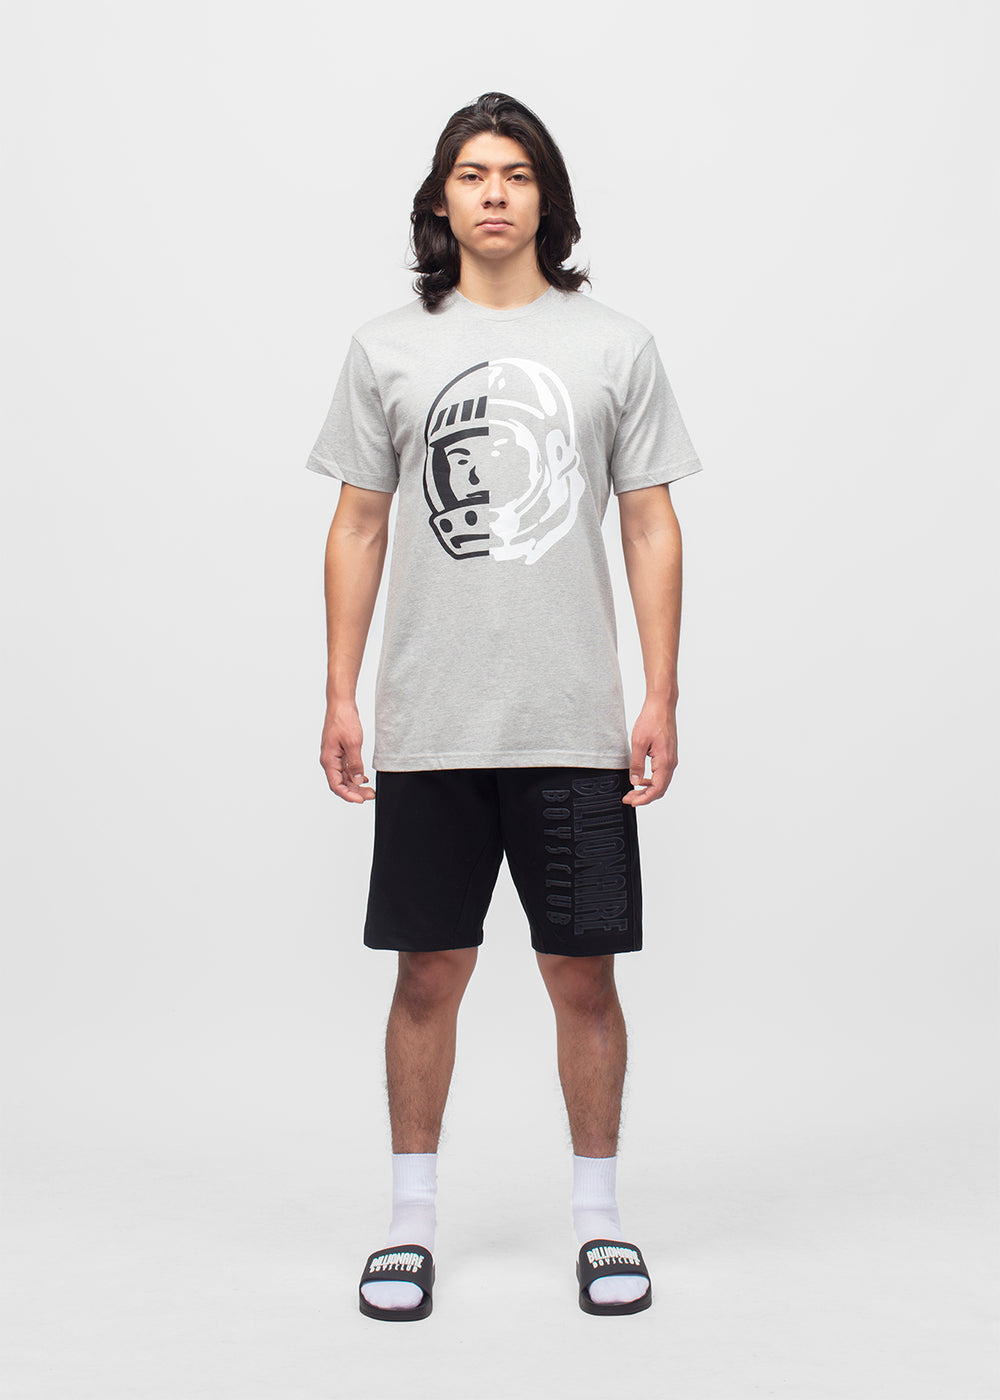 billionaire-boys-club-spacewalk-ss-tee-891-6207-gry-gry-4